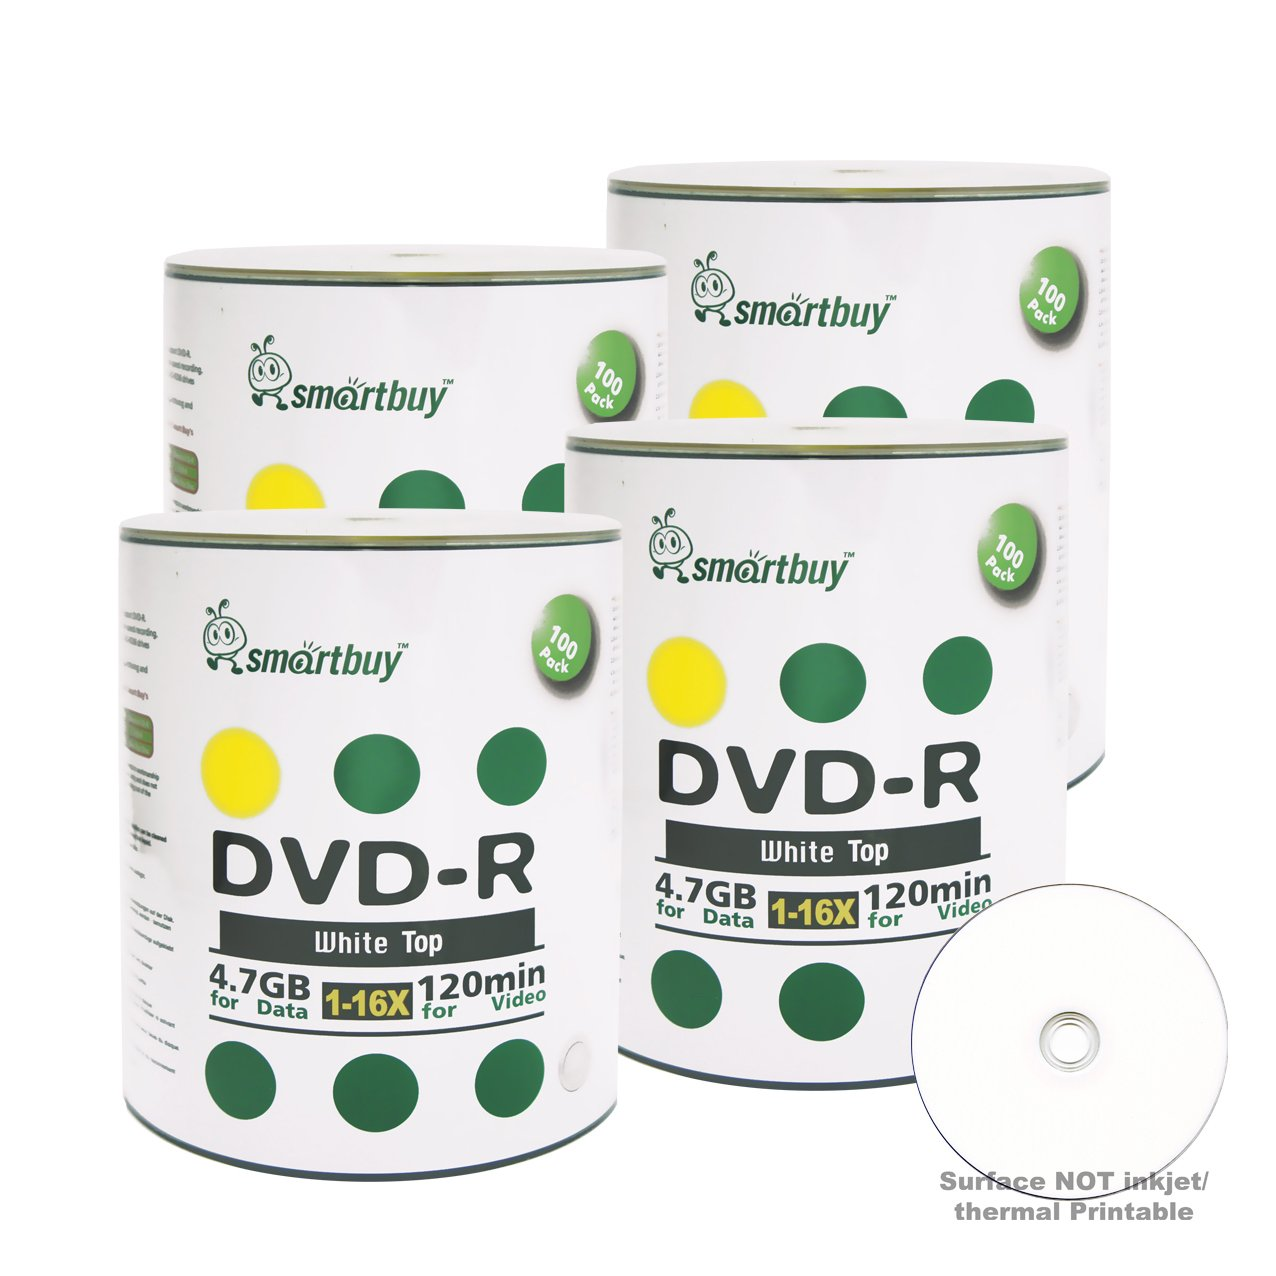 Smartbuy 4.7gb/120min 16x DVD-R White Top Blank Data Video Recordable Media Disc (400-Disc)